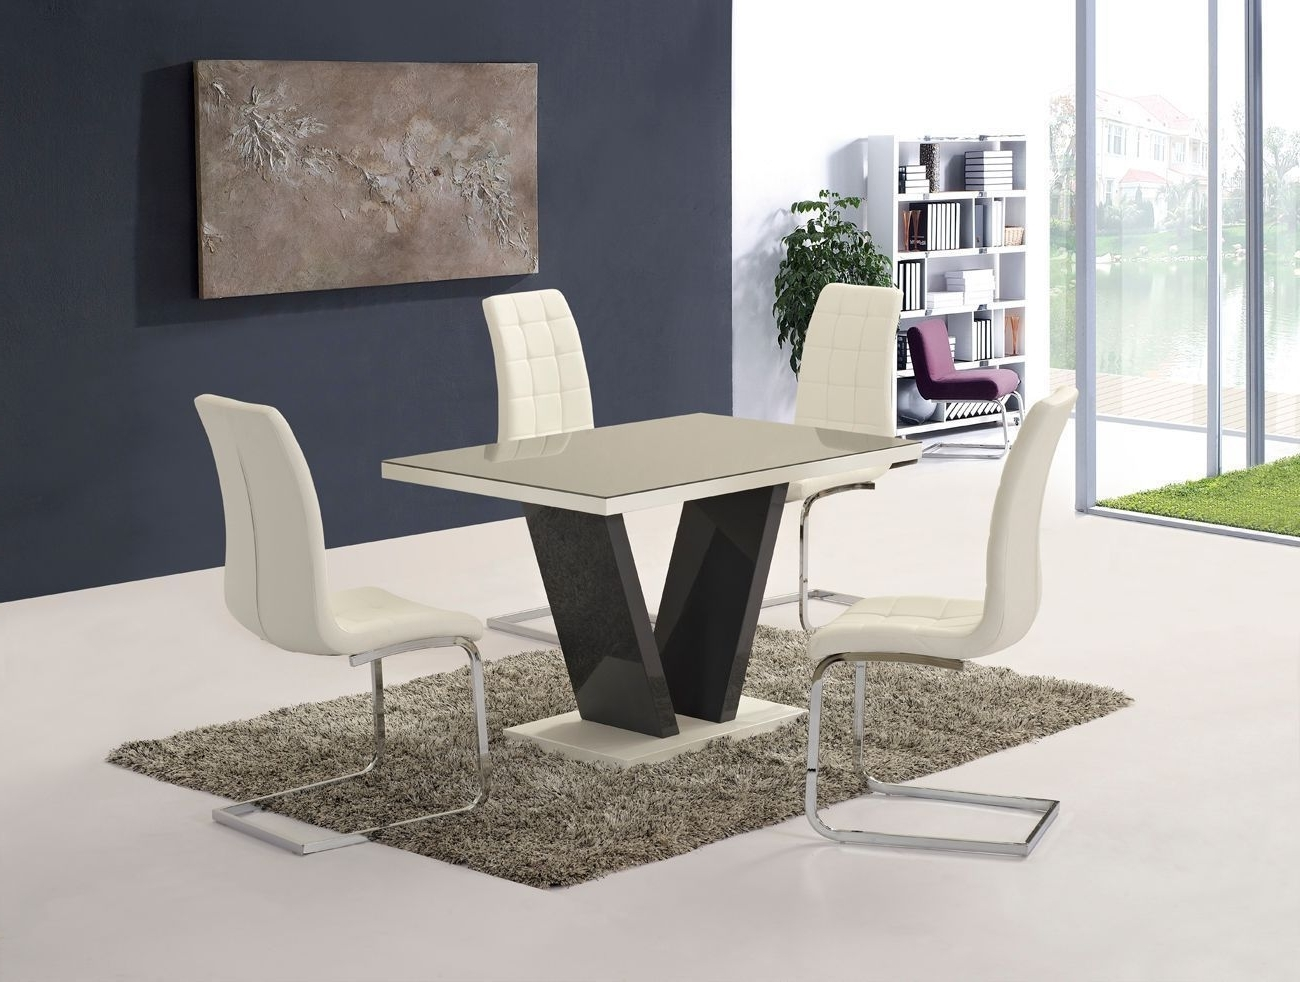 Famous Grey High Gloss Glass Dining Table And 6 White Chairs  Homegenies In Black Gloss Dining Tables And 6 Chairs (View 10 of 25)